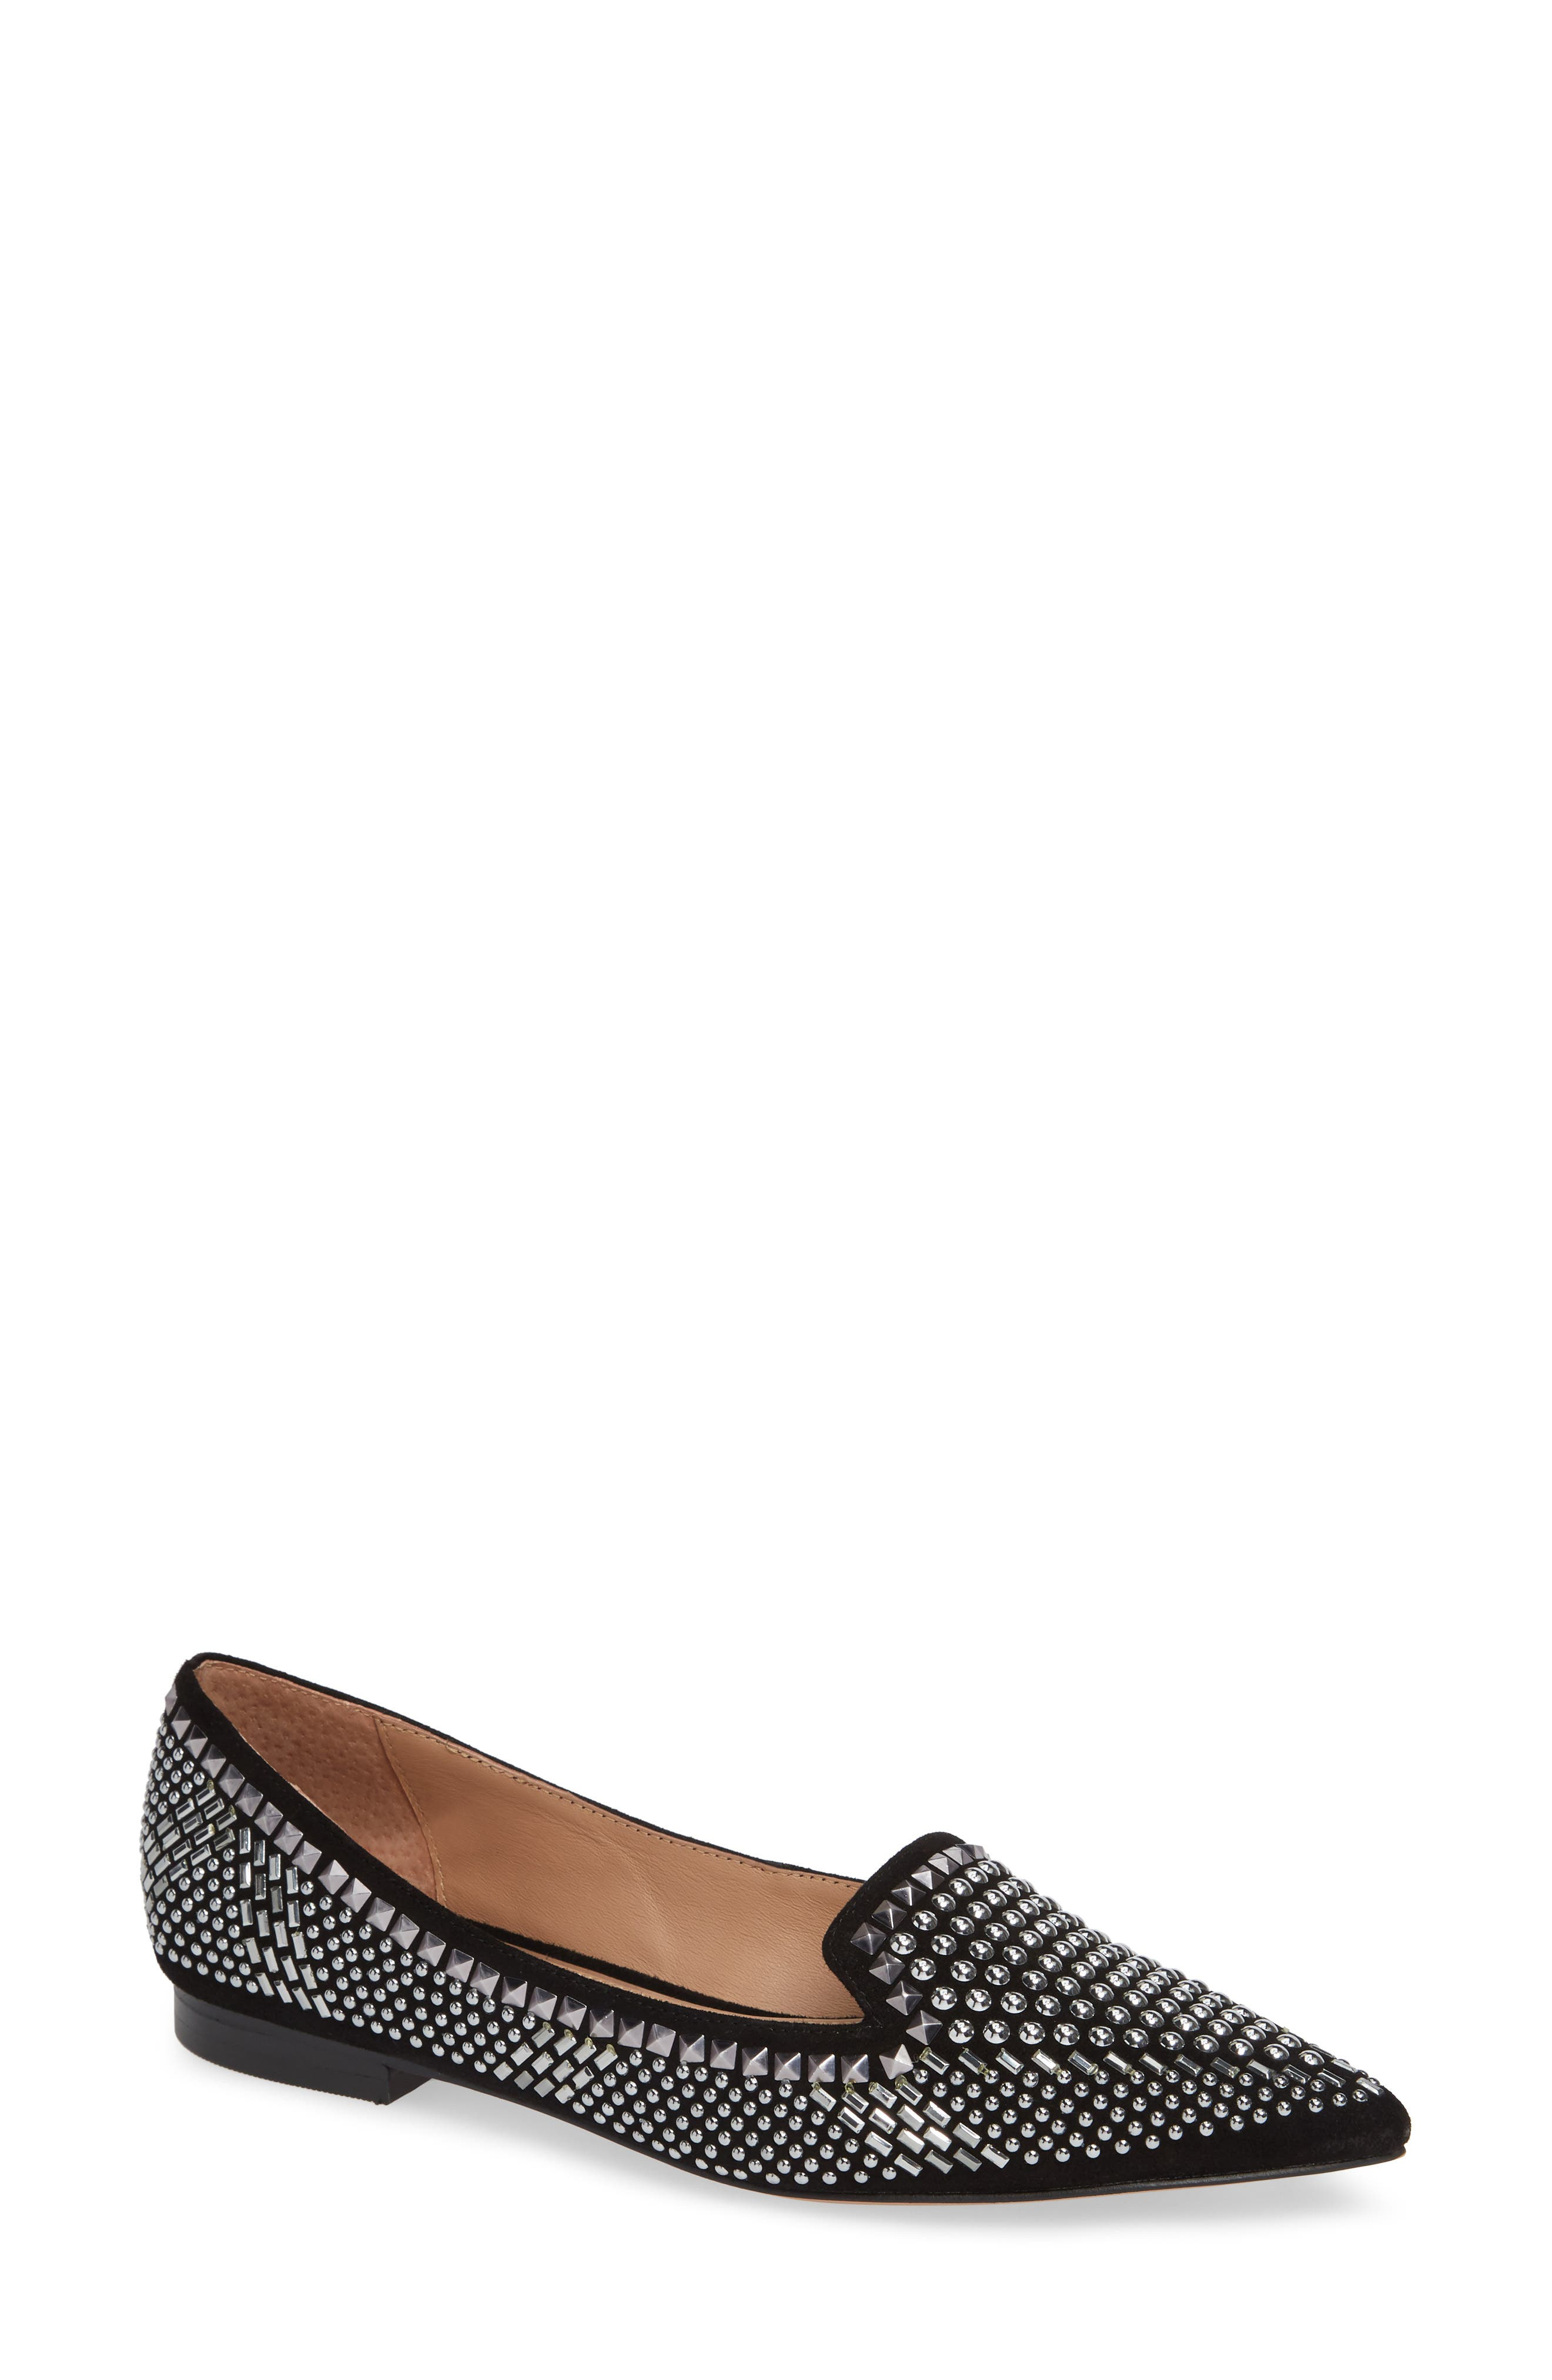 Portia Studded Loafer,                             Main thumbnail 1, color,                             BLACK SUEDE